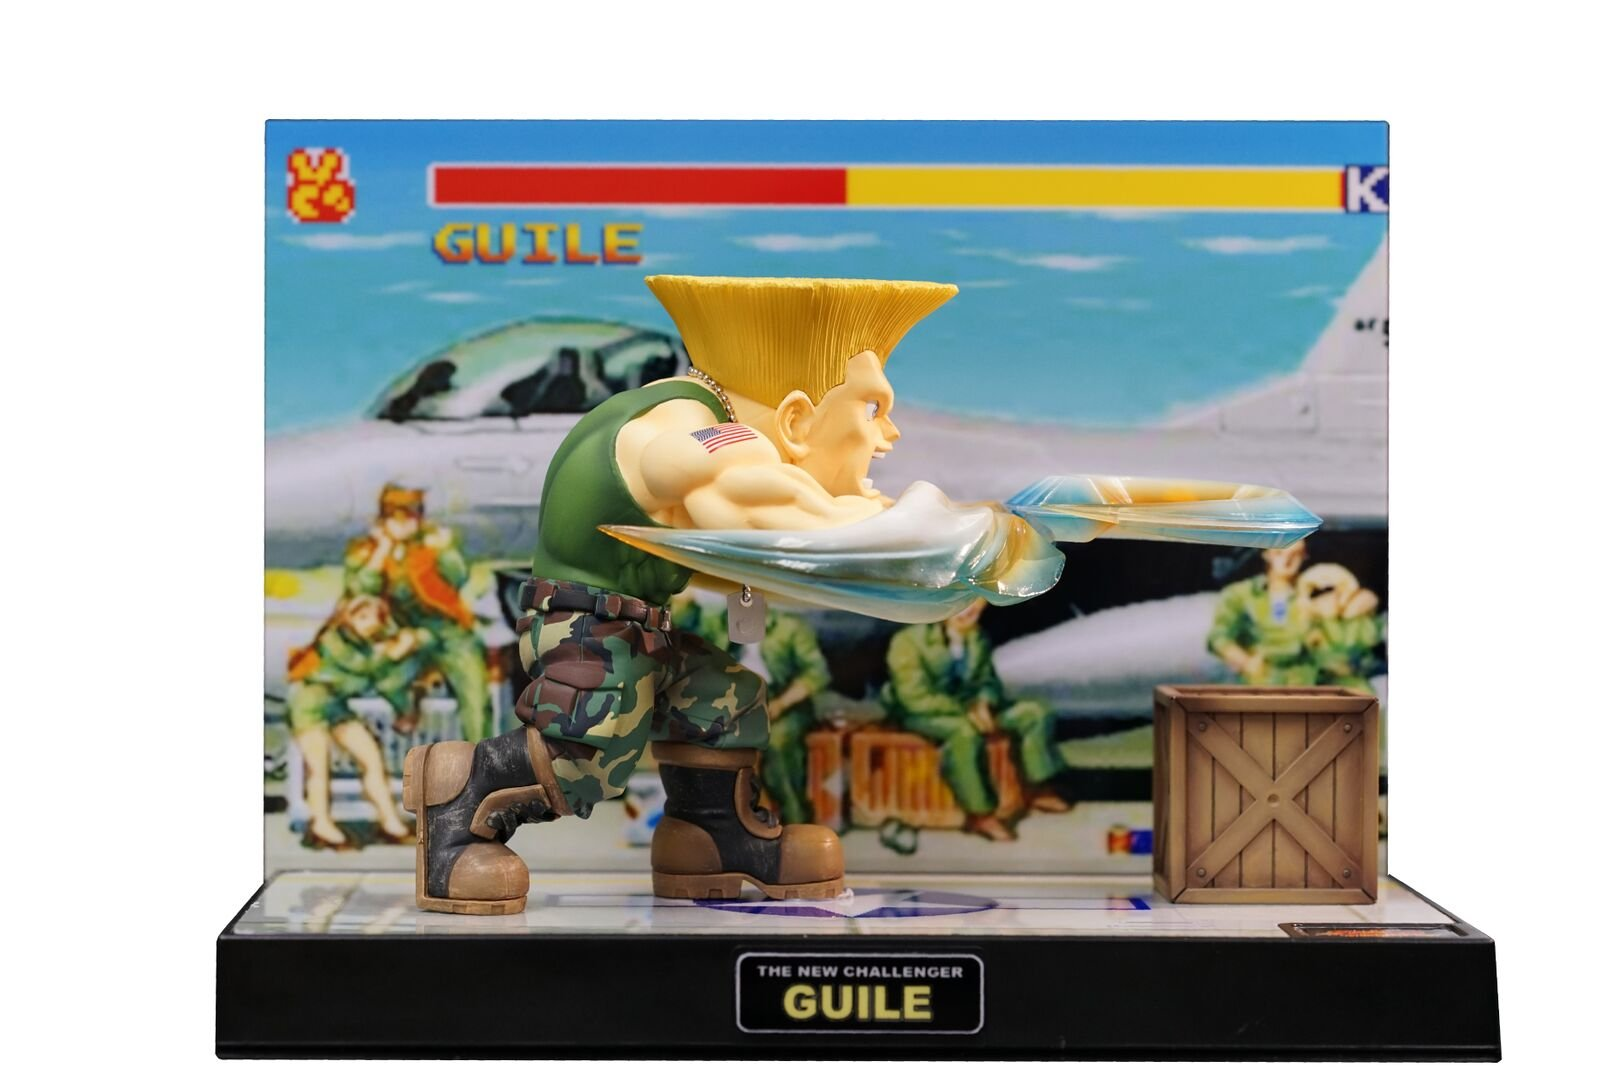 Tier1 Accessories Guile Street Fighter Fully Licensed Led Sight and Sound Figure - PlayStation 3; PlayStation 2; PlayStation